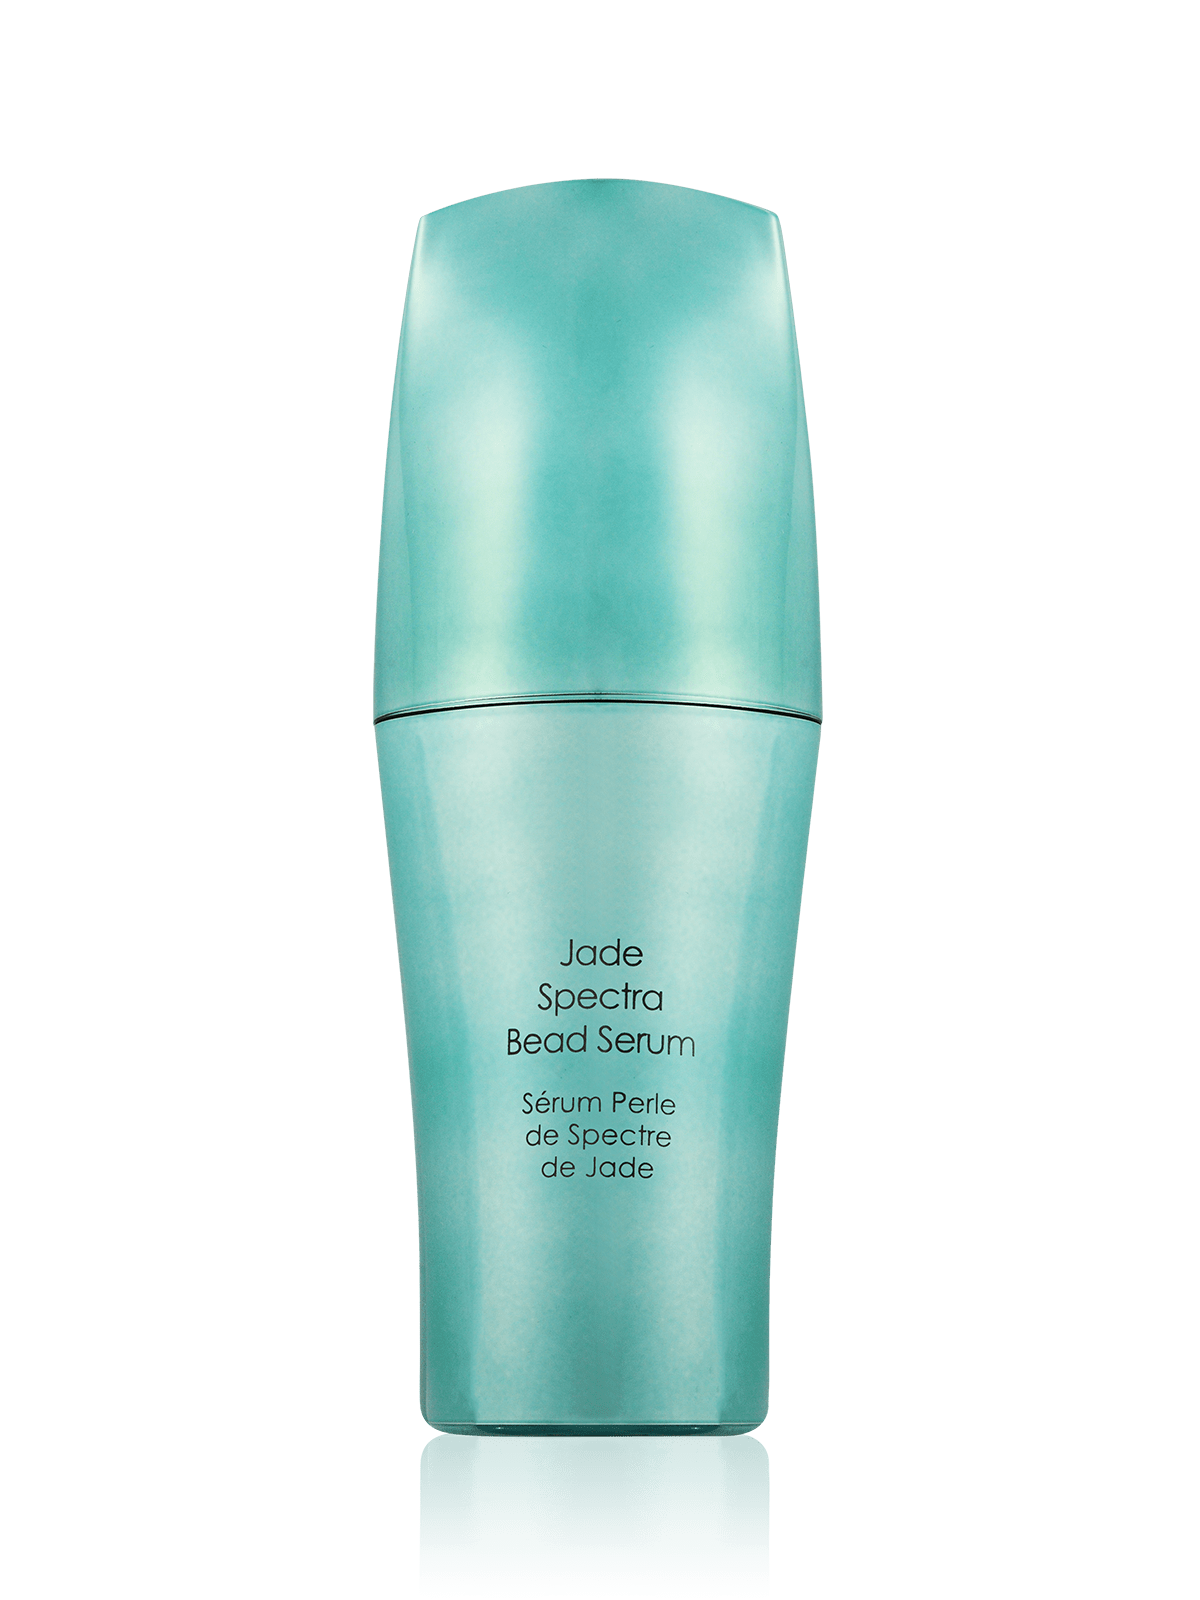 Jade Spectra Bead Serum back